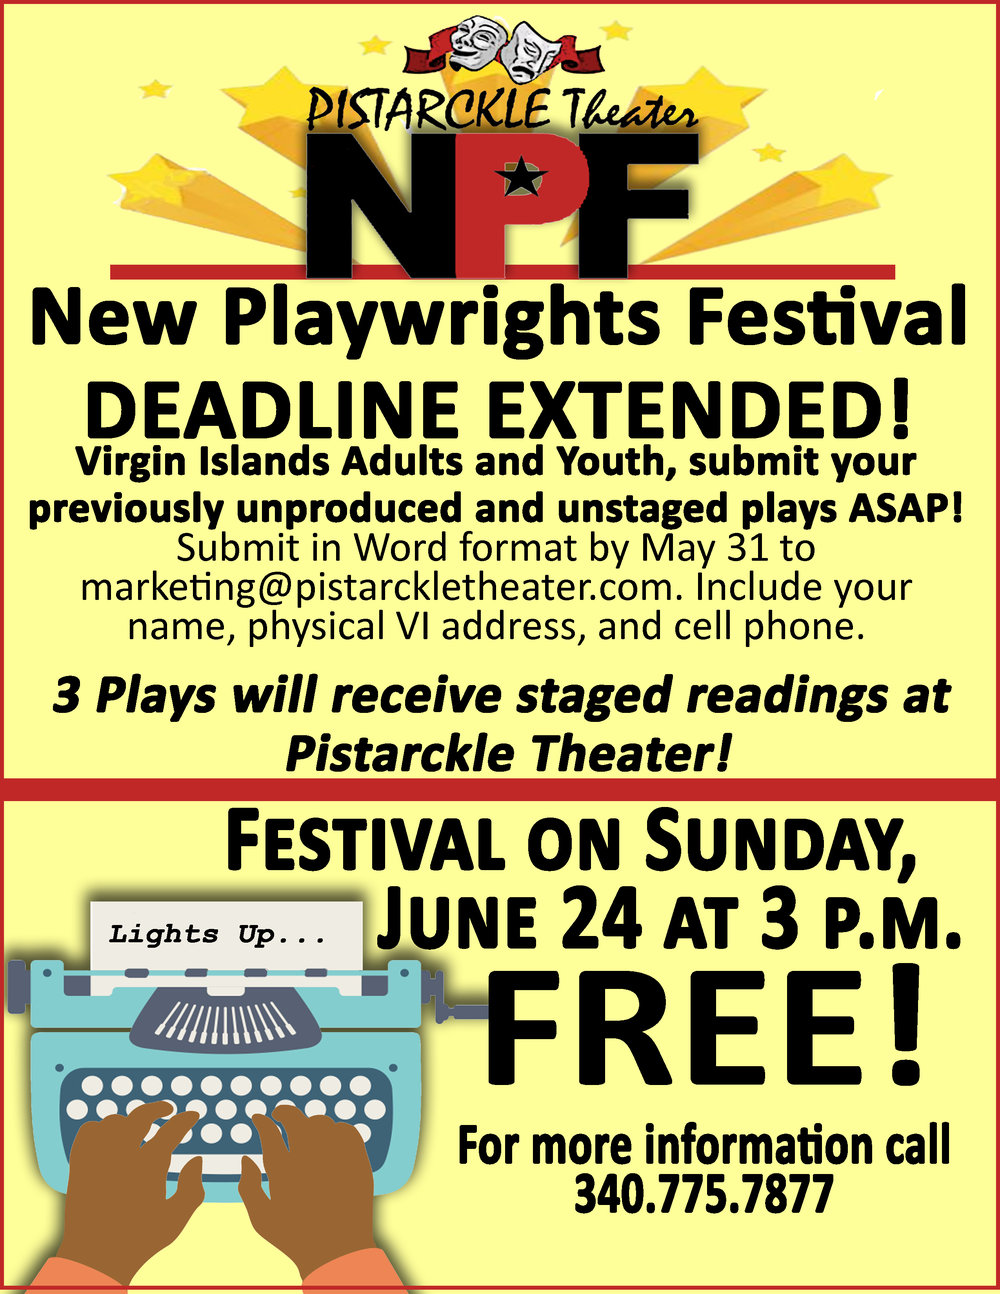 new playwrights fest 18 new dates.jpg